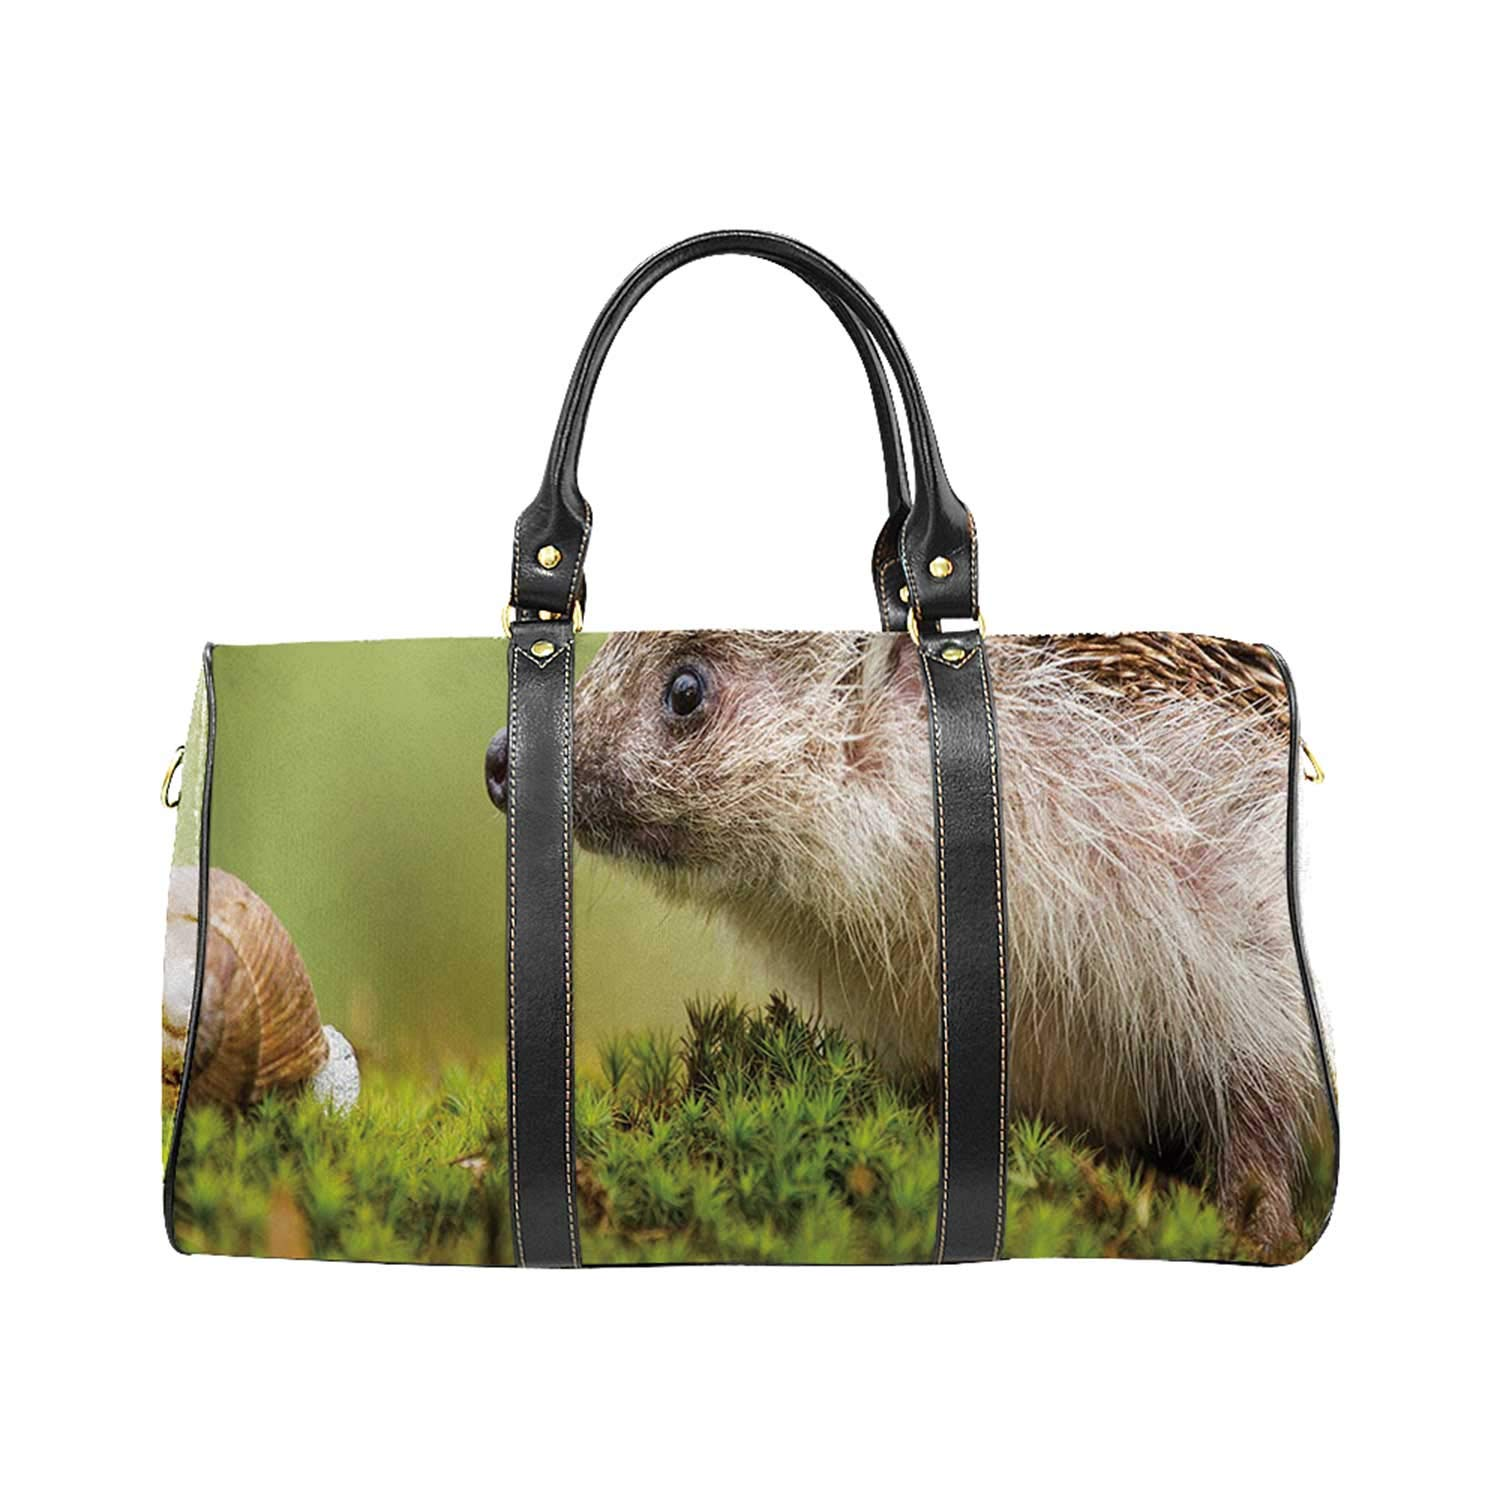 Hedgehog Versatility Travel Bag,Animal Photography in Eastern Europe Slug with Hedgehog Scenes from Nature Print Decorative for Trips by YOLIYANA